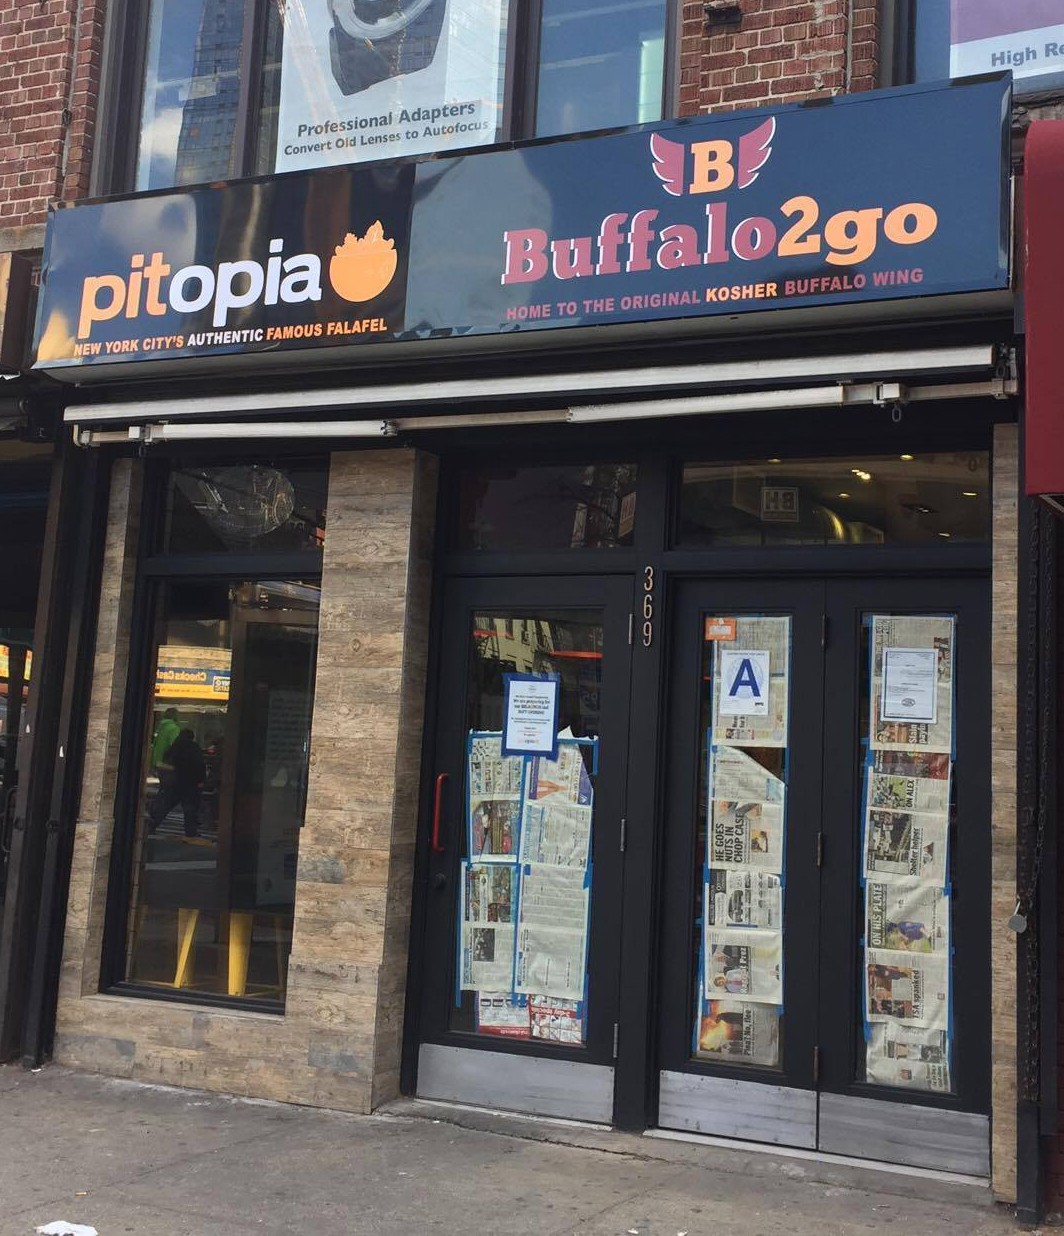 Get $15 for $10 at Pitopia / Buffalo 2 Go